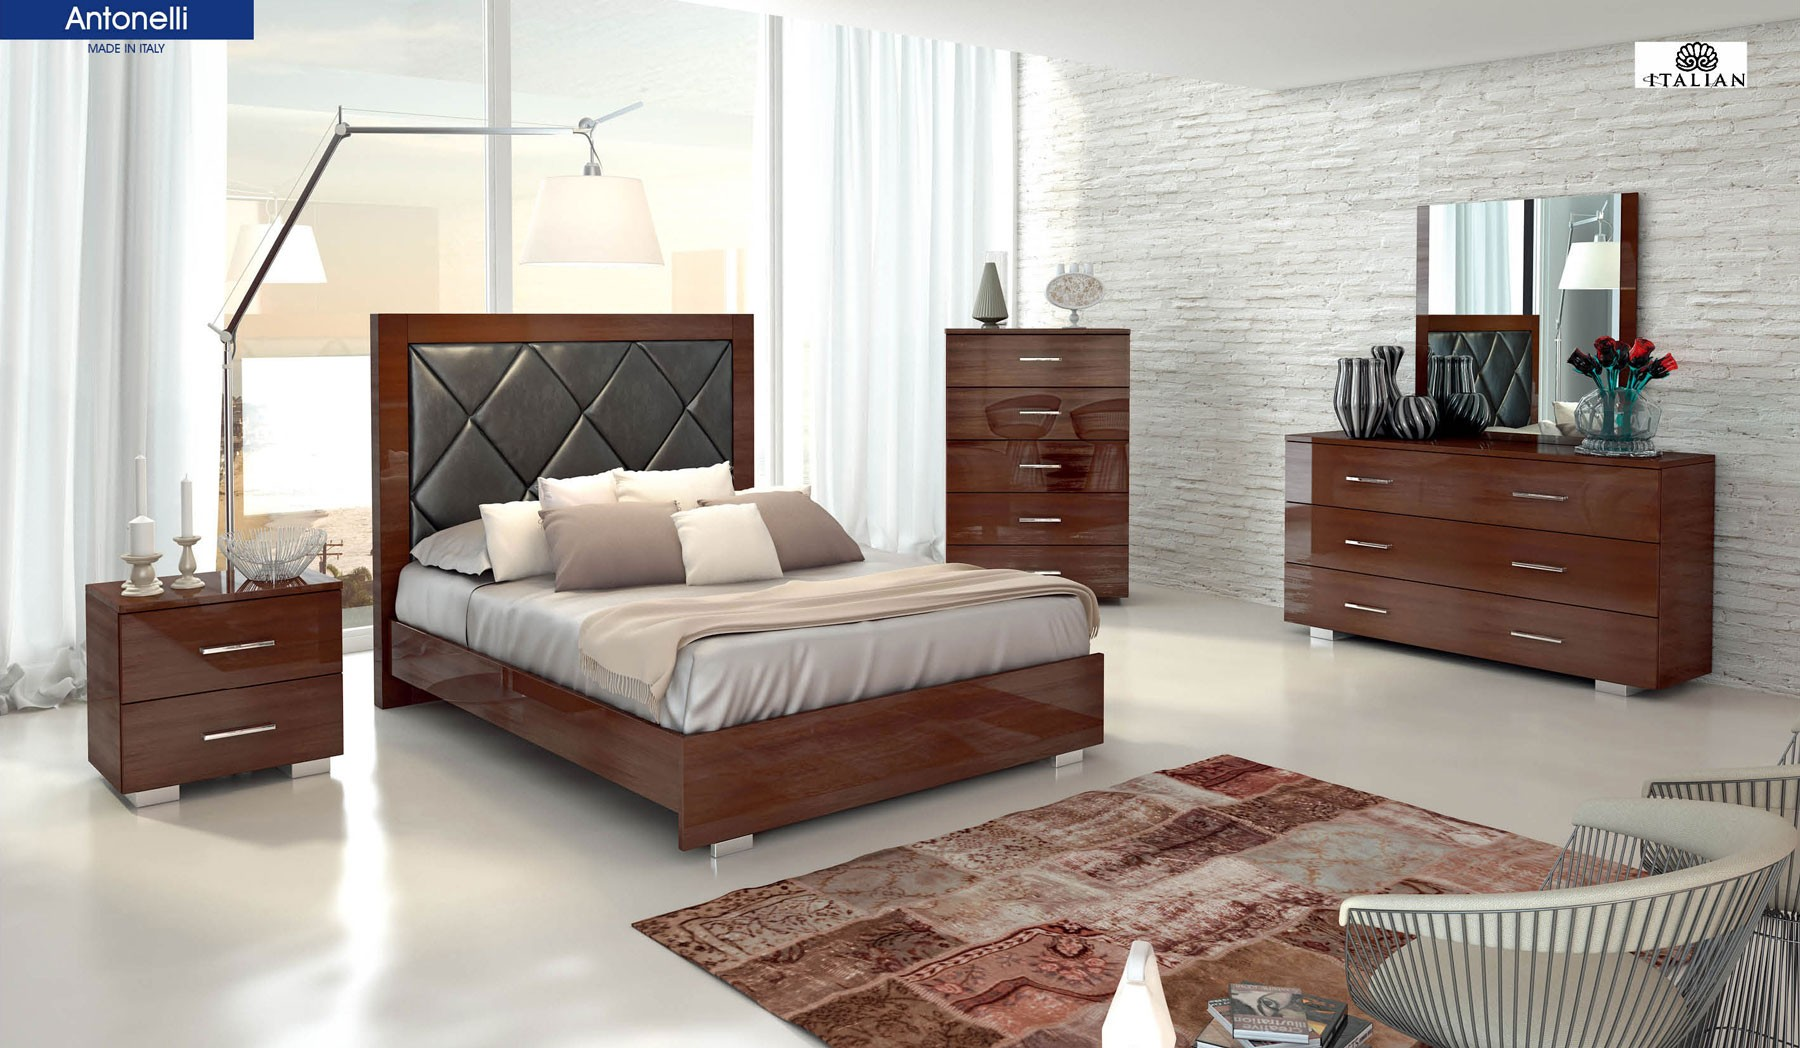 Antonelli Brown Lacquer Bedroom Set by Signature, Italy